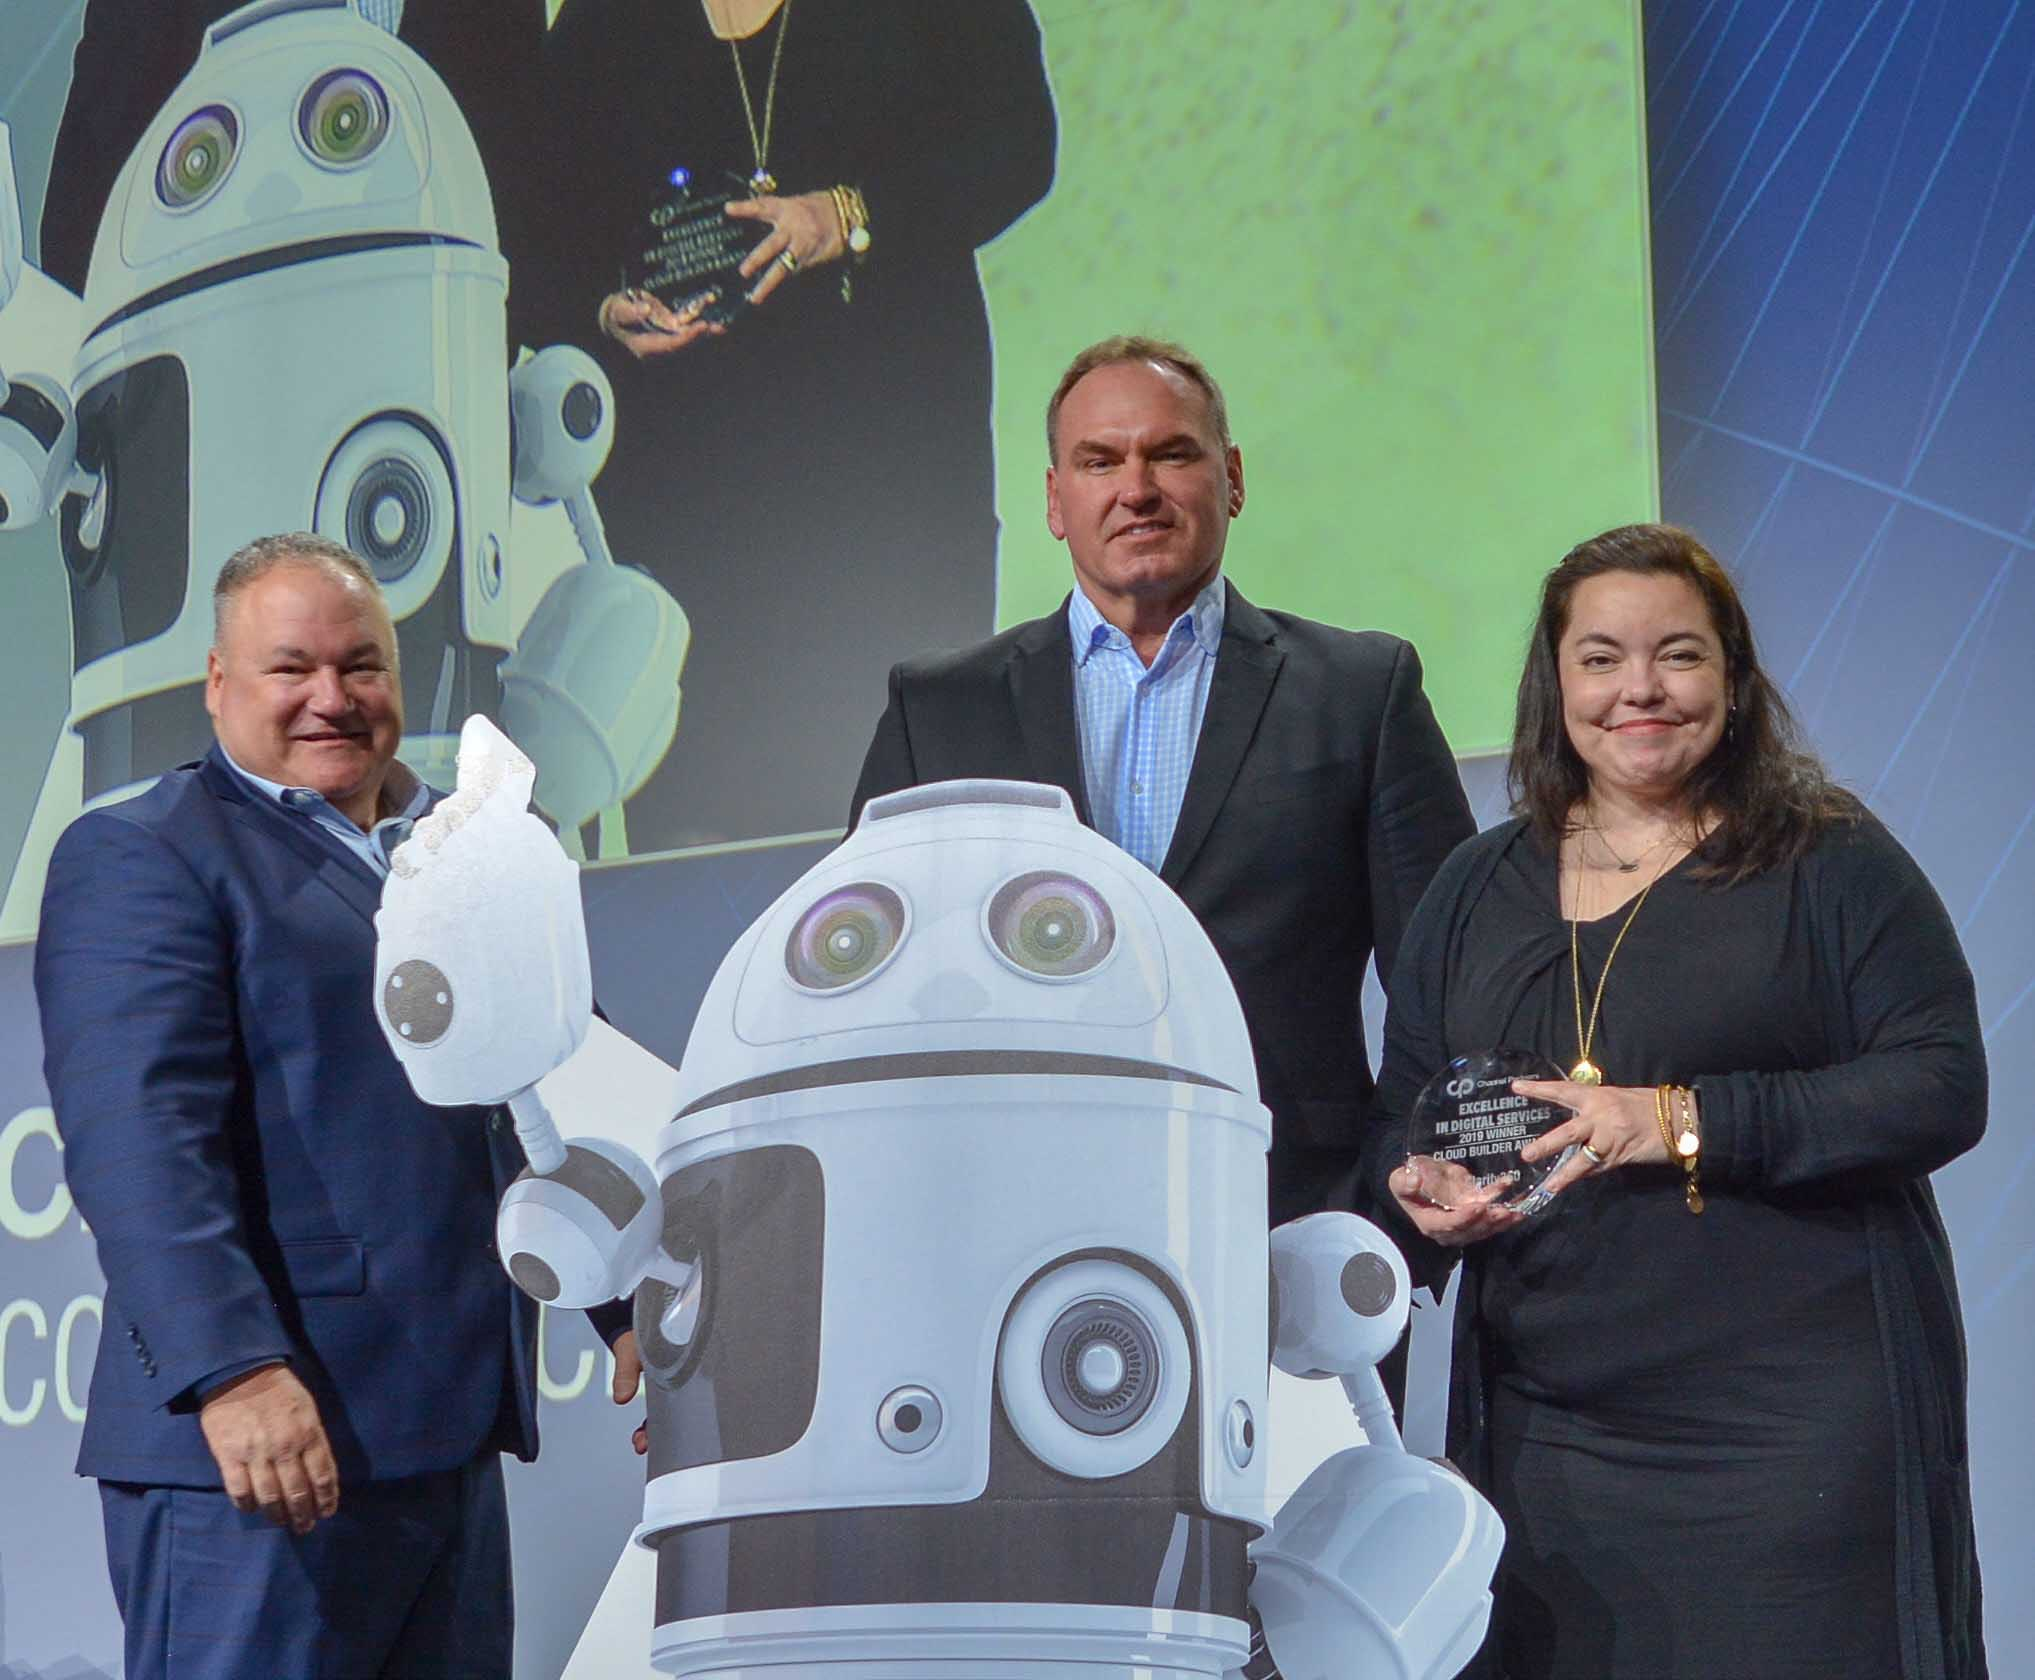 Excellence in Digital Services Awards